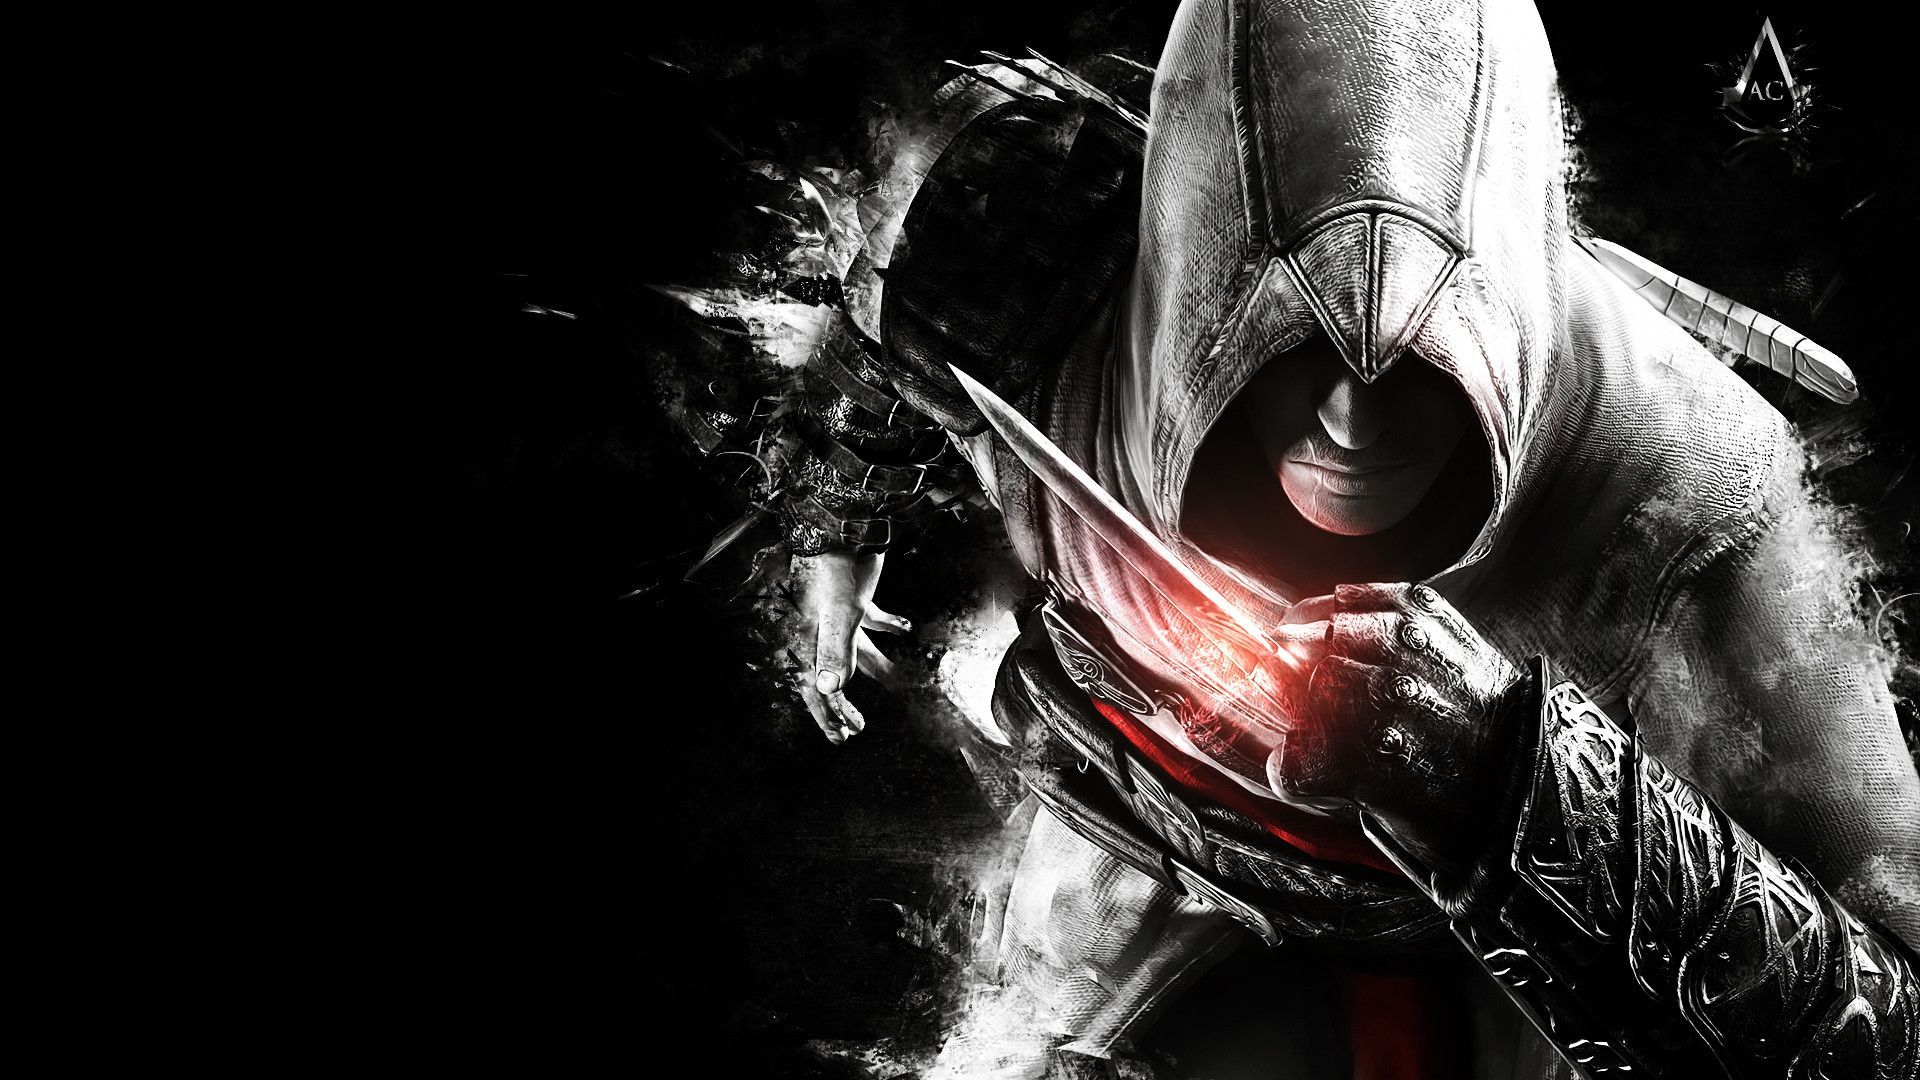 Assassin Creed Wallpaper 28 Wallpapers Adorable Wallpapers